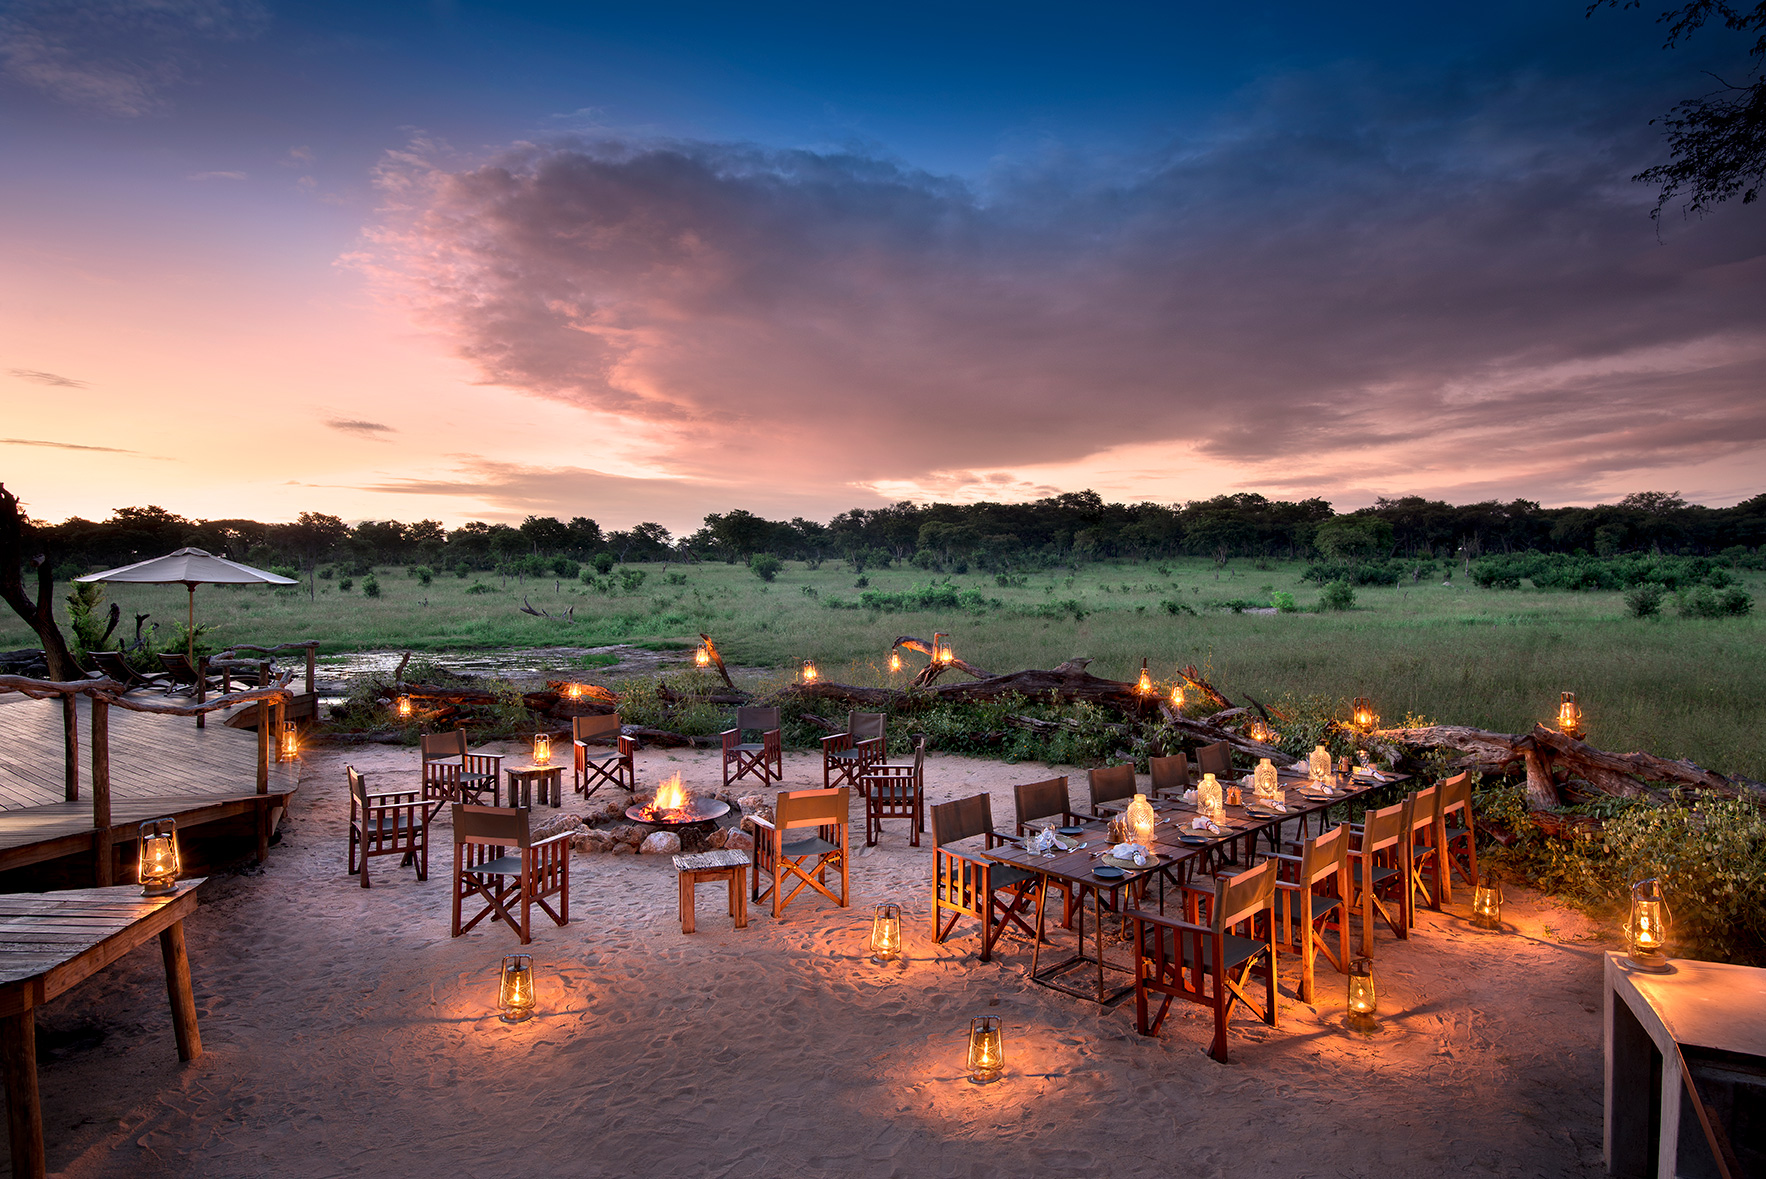 Hand sanitizer Covid-19 Health Procedures & Medical Evacuations - African Bush Camps Safari 10 Reasons Why Africa Should be First on Your Travel List Post-quarantine widely-spaced open-air dining